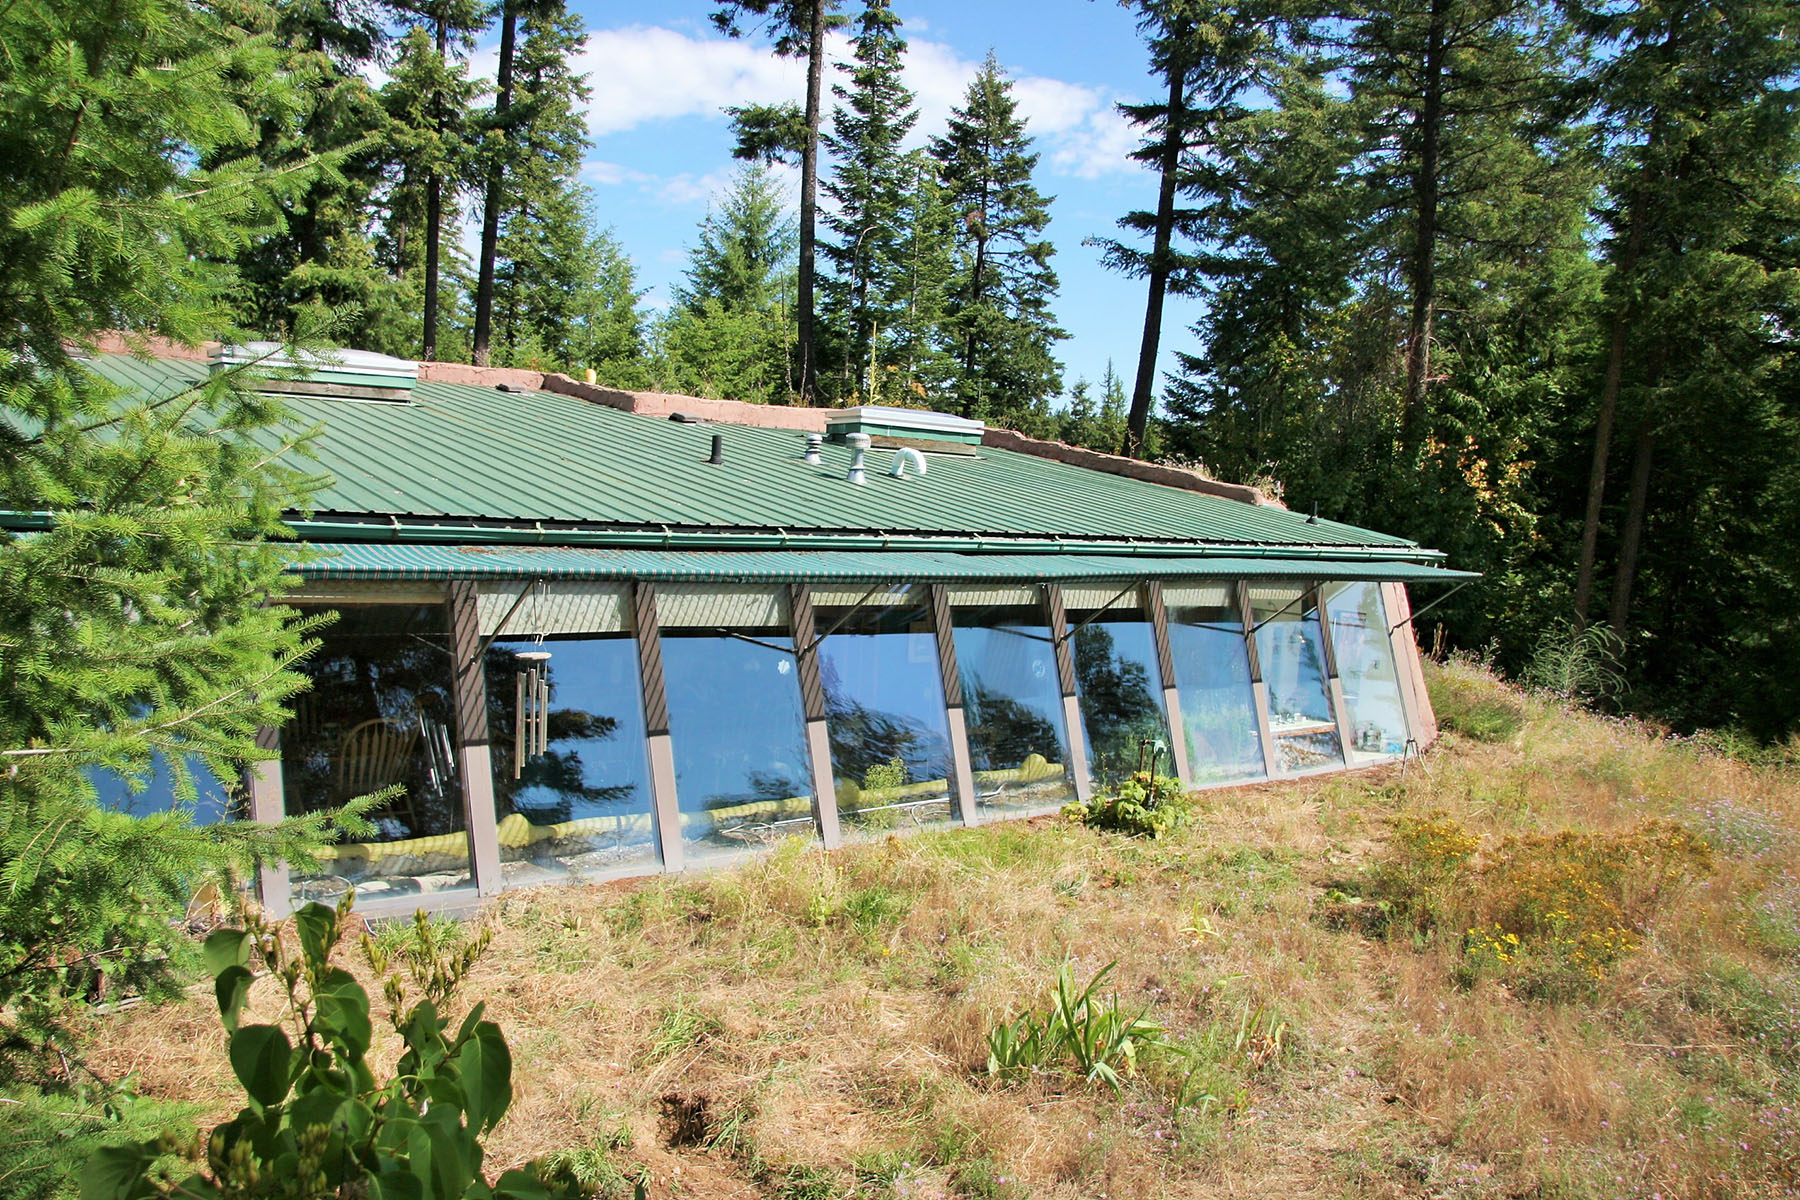 Einfamilienhaus für Verkauf beim Extra-ordinary self sustained property with 2 homes on 40 acres 296 Iora Ln Careywood, Idaho, 83809 Vereinigte Staaten